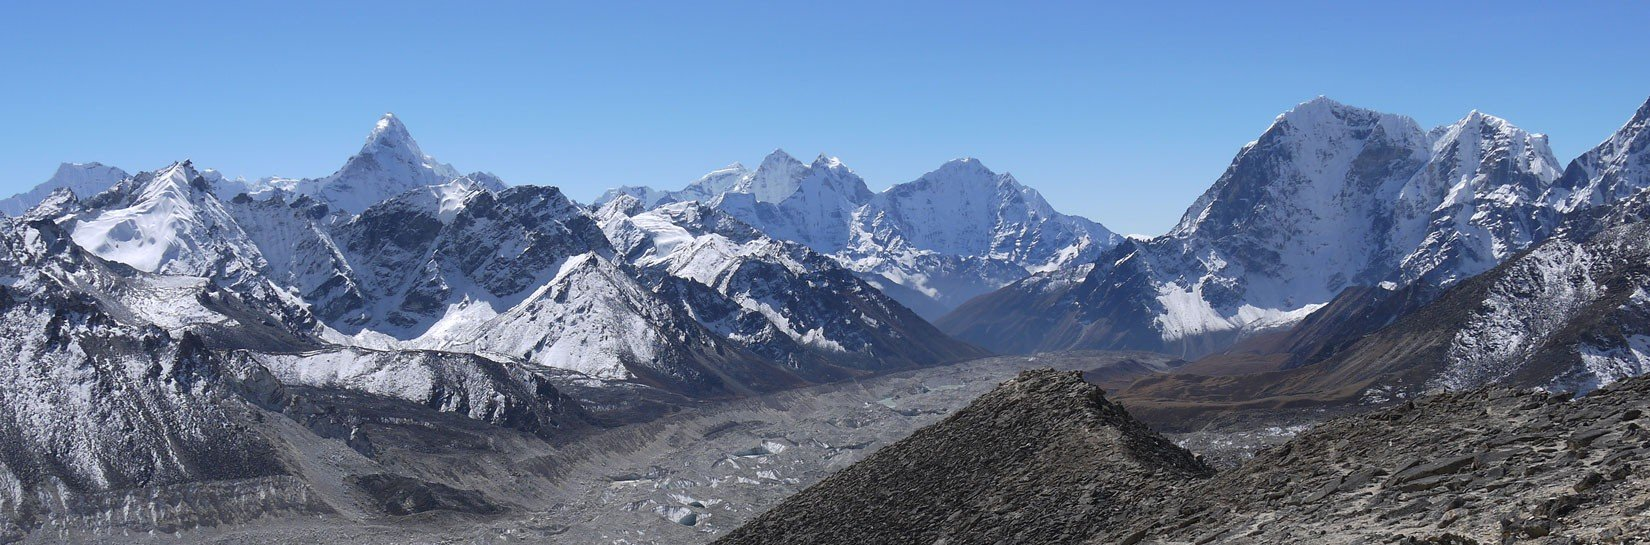 Everest Base Camp Economy Trekking - 13 Days